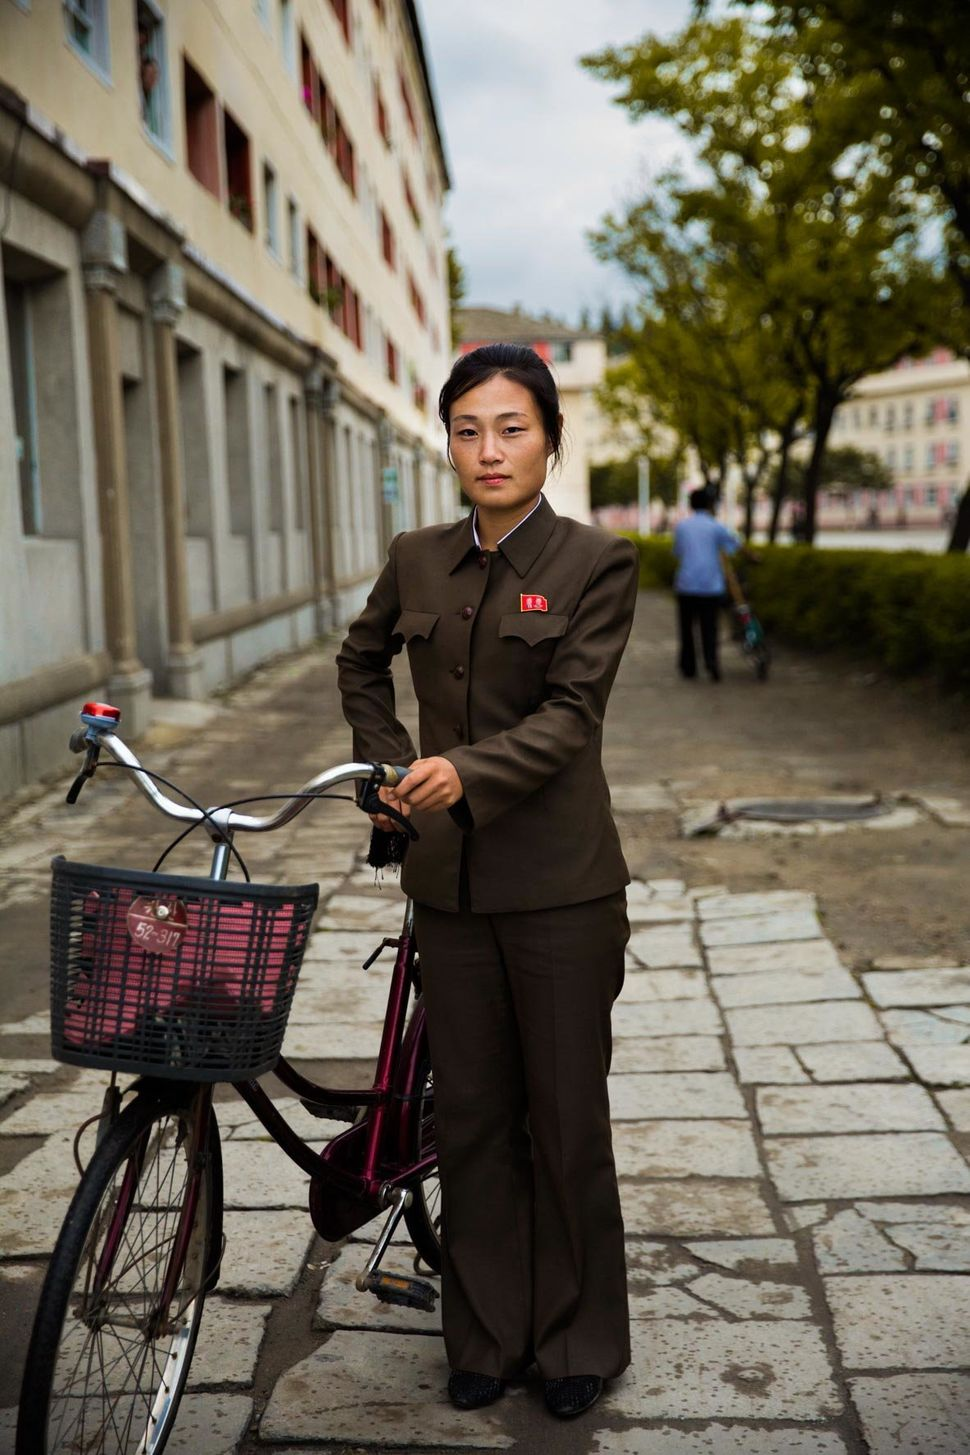 Bicycles are the most popular vehicle.